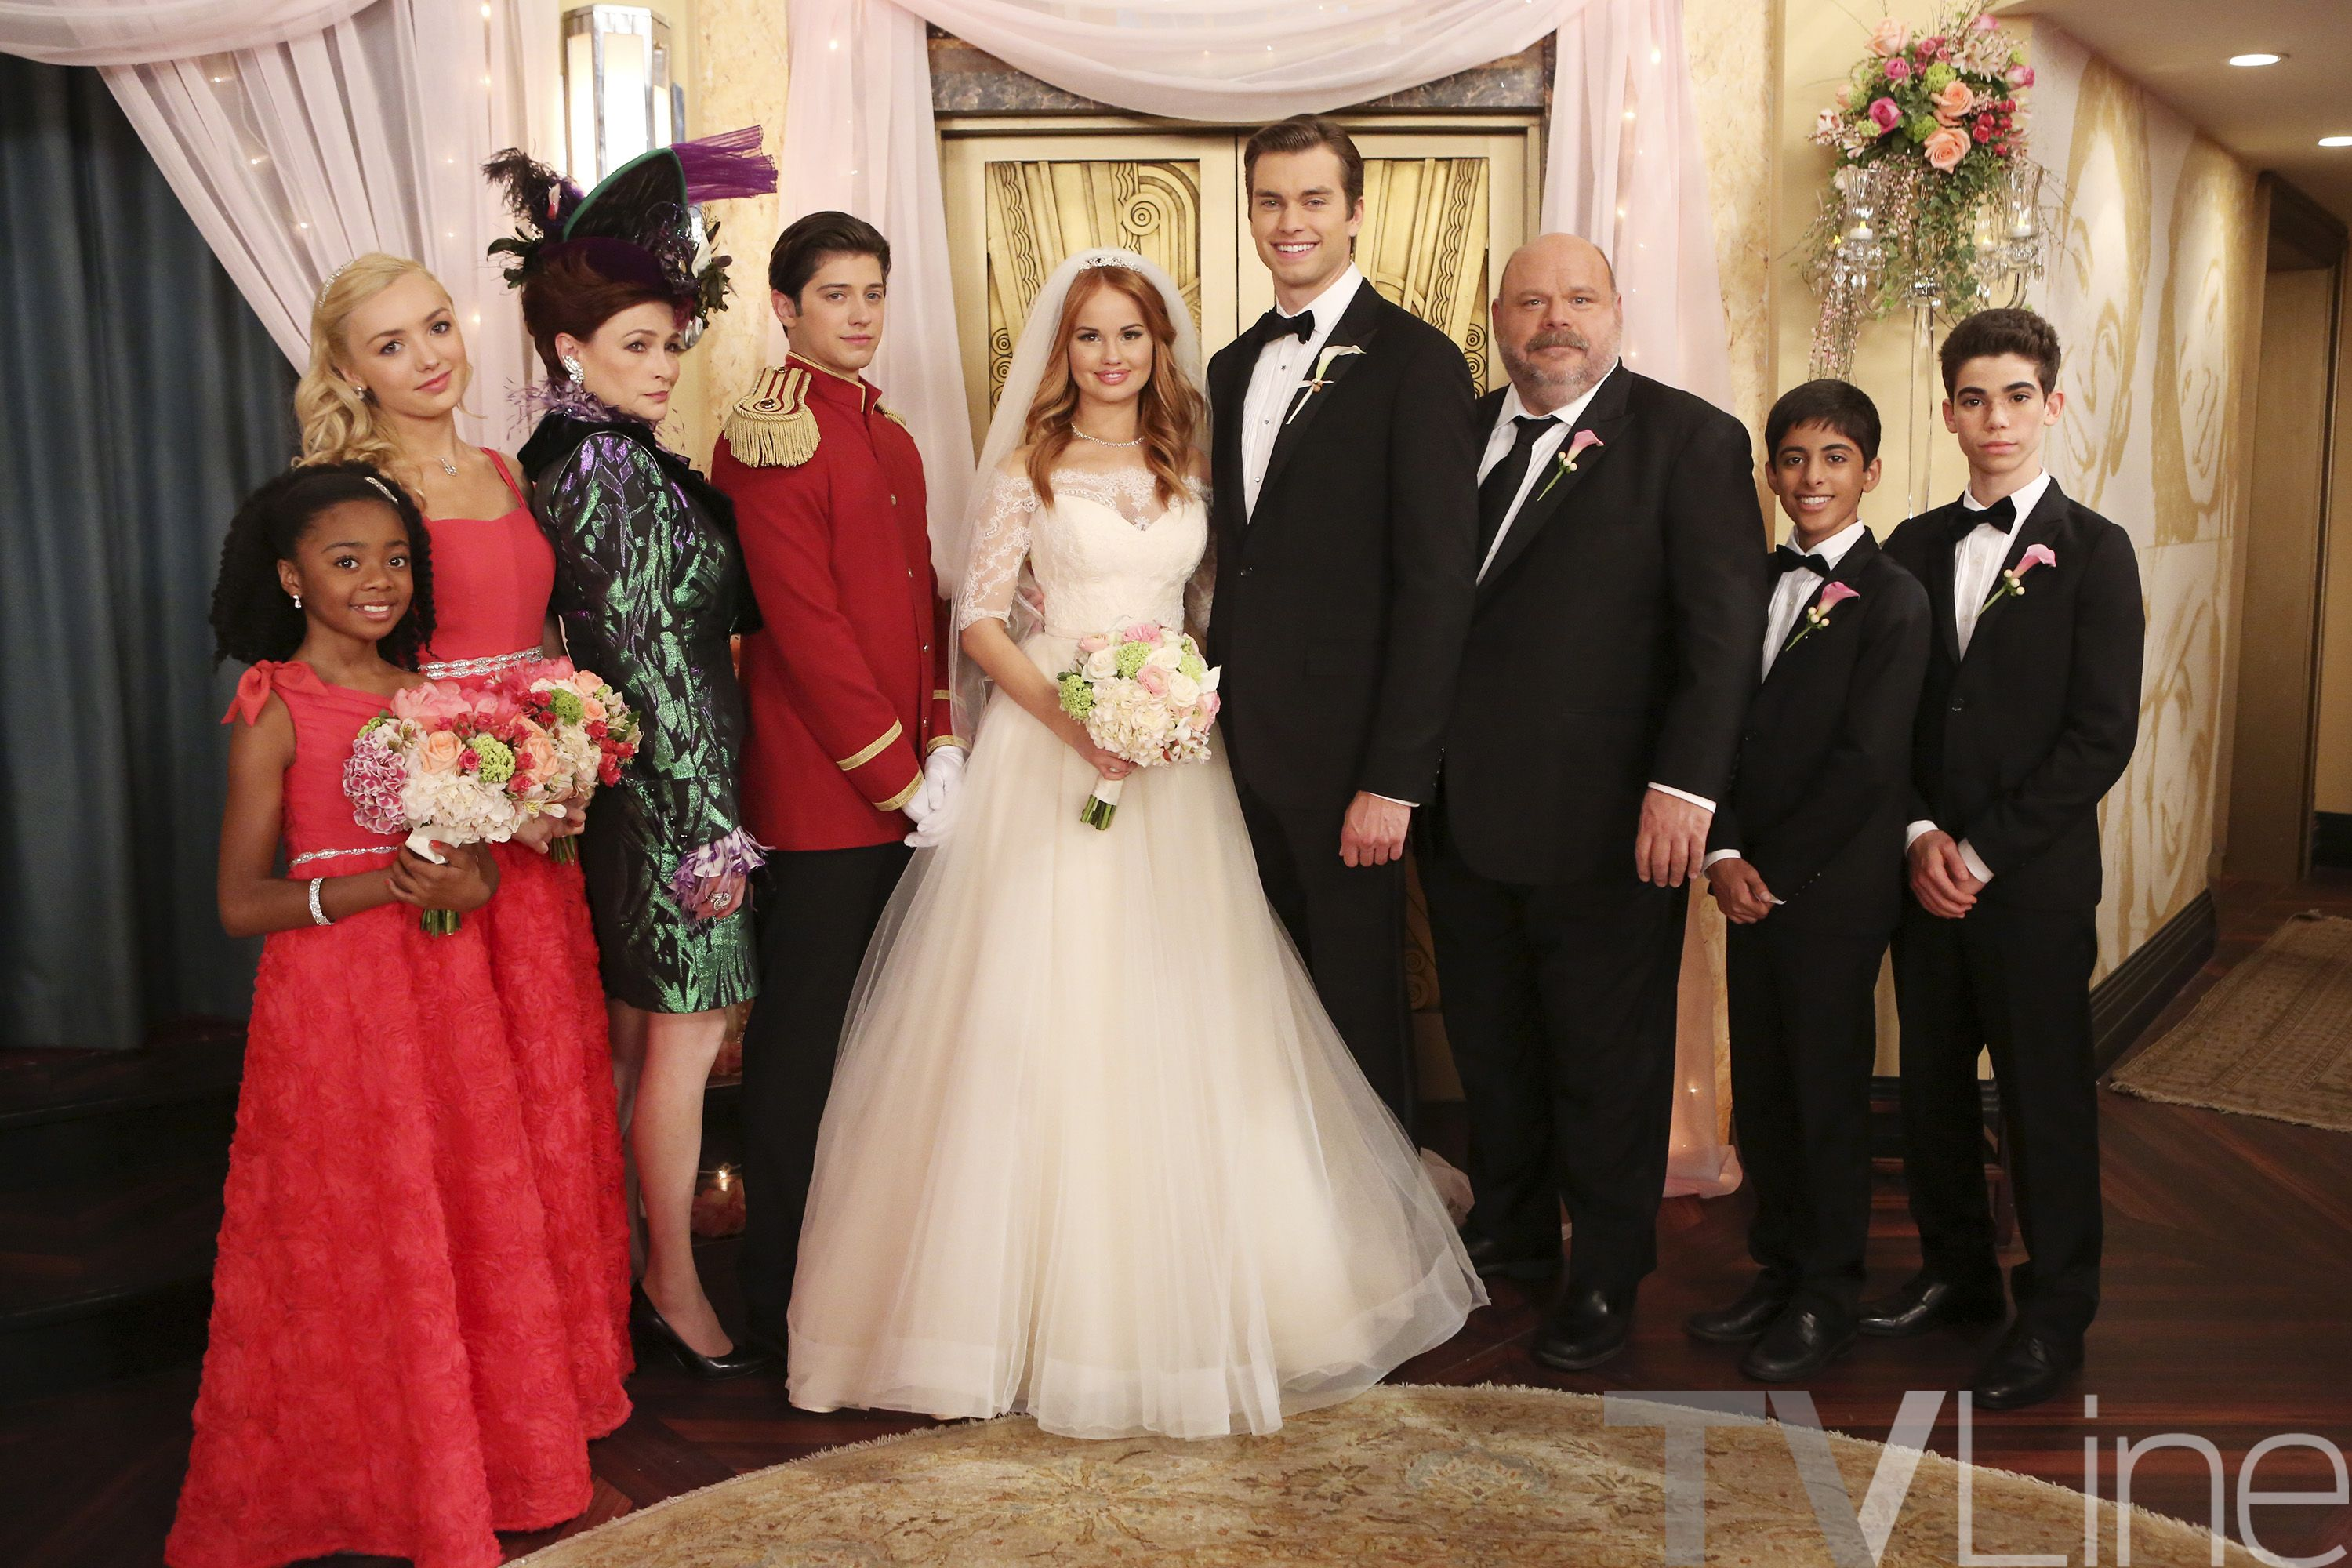 First Look: Jessie's Wedding Portrait!